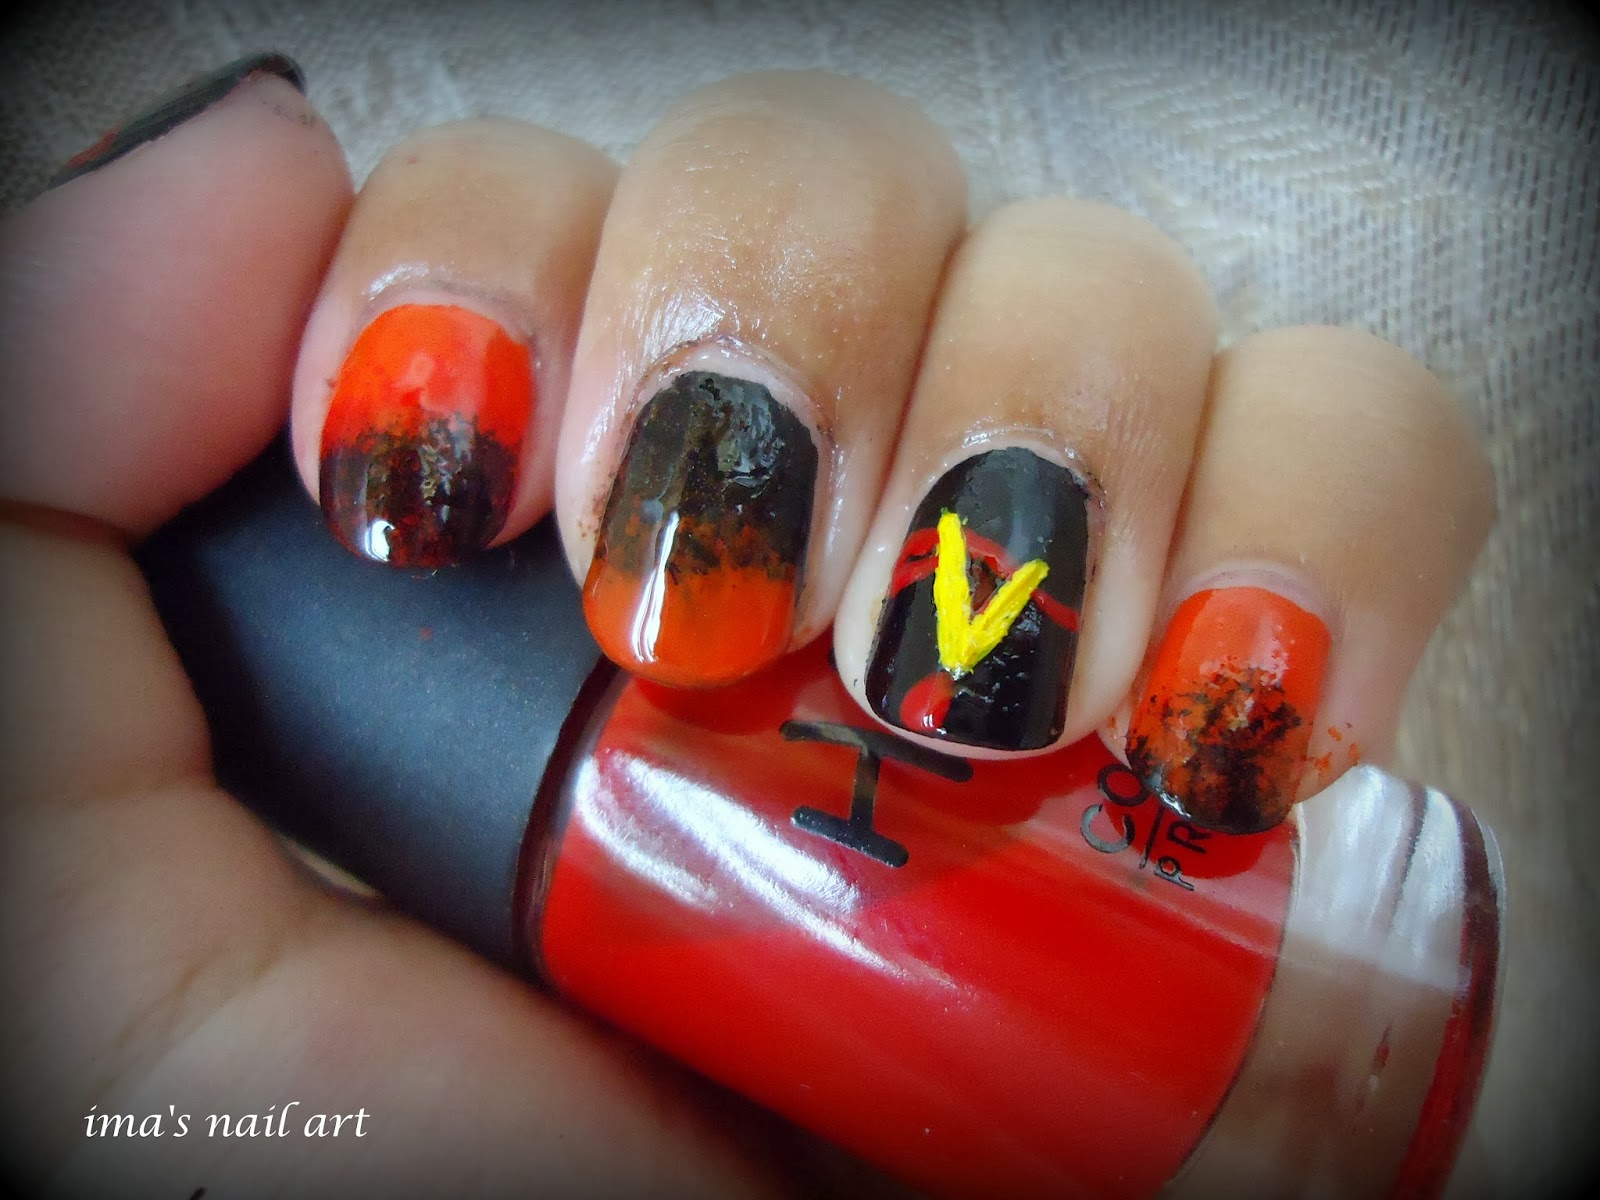 Imas nail art the vampire diaries nail art the gradient is created with the help of a sponge for tutorial httpimanailartspot201210tiger nail art tutorialml prinsesfo Gallery